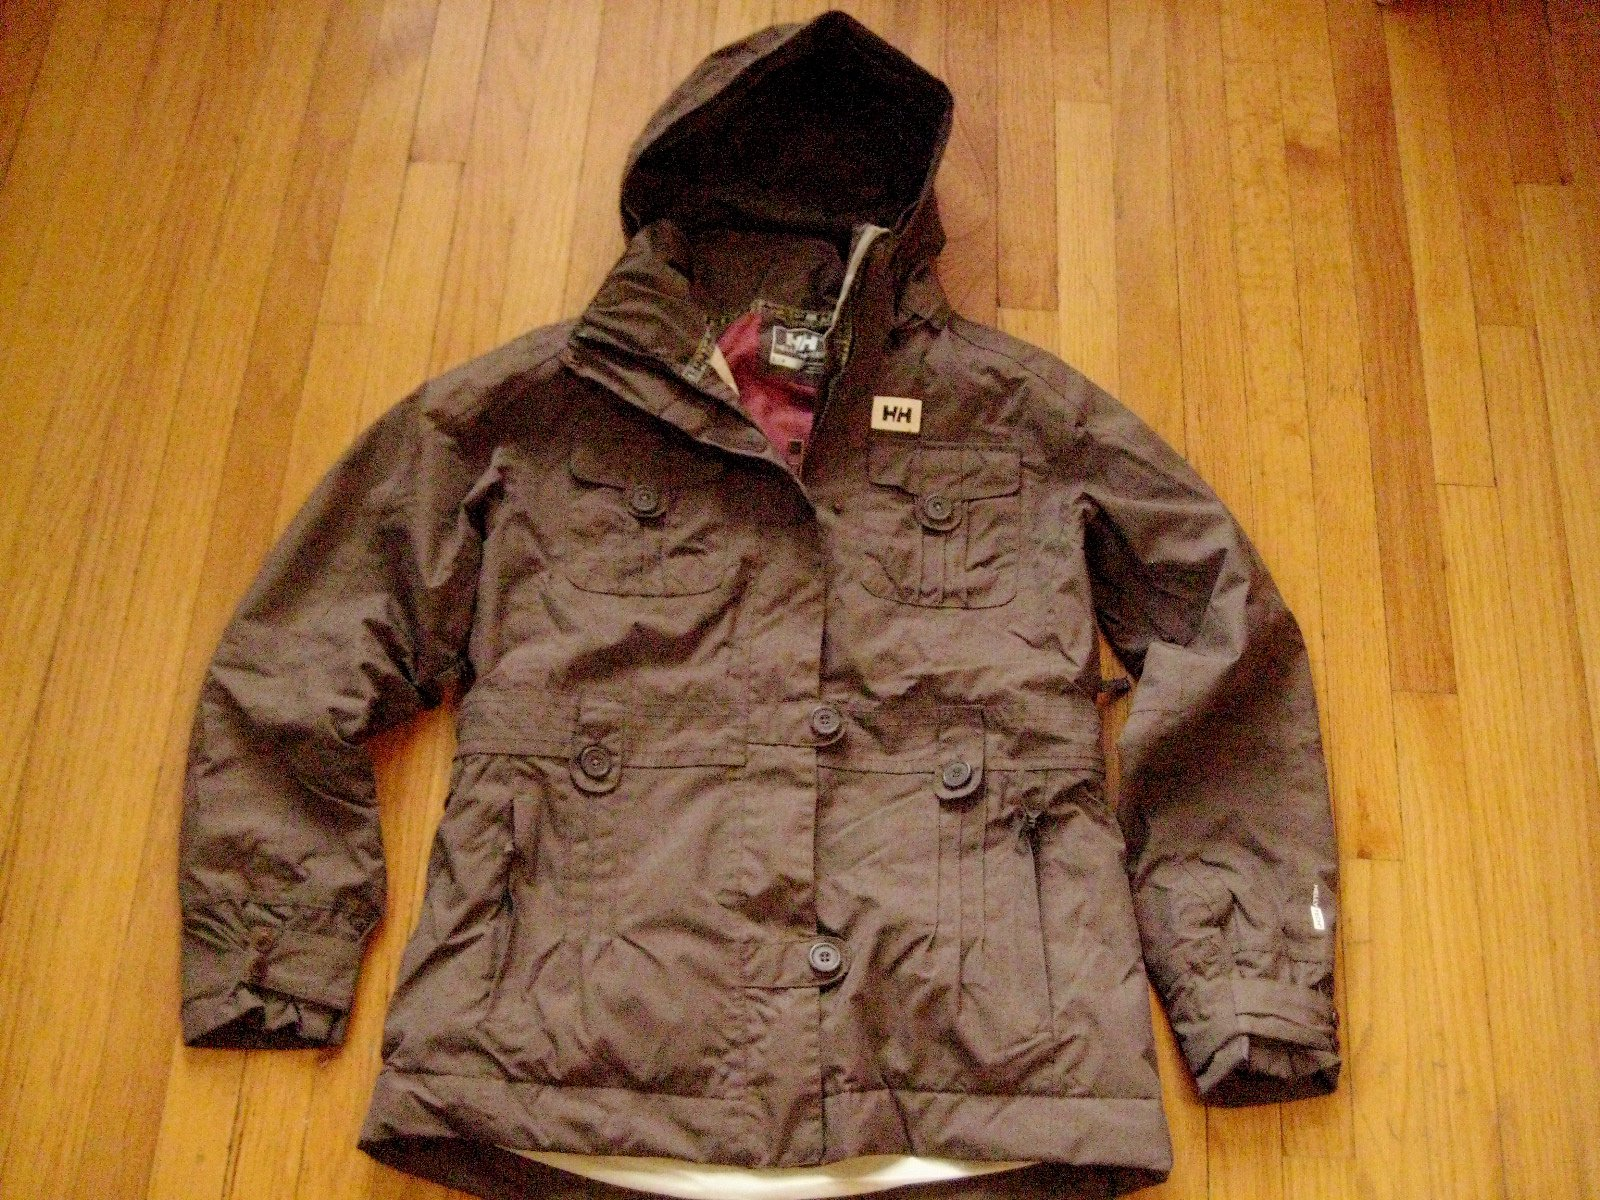 2008 Helly Hansen Women's jacket for $190